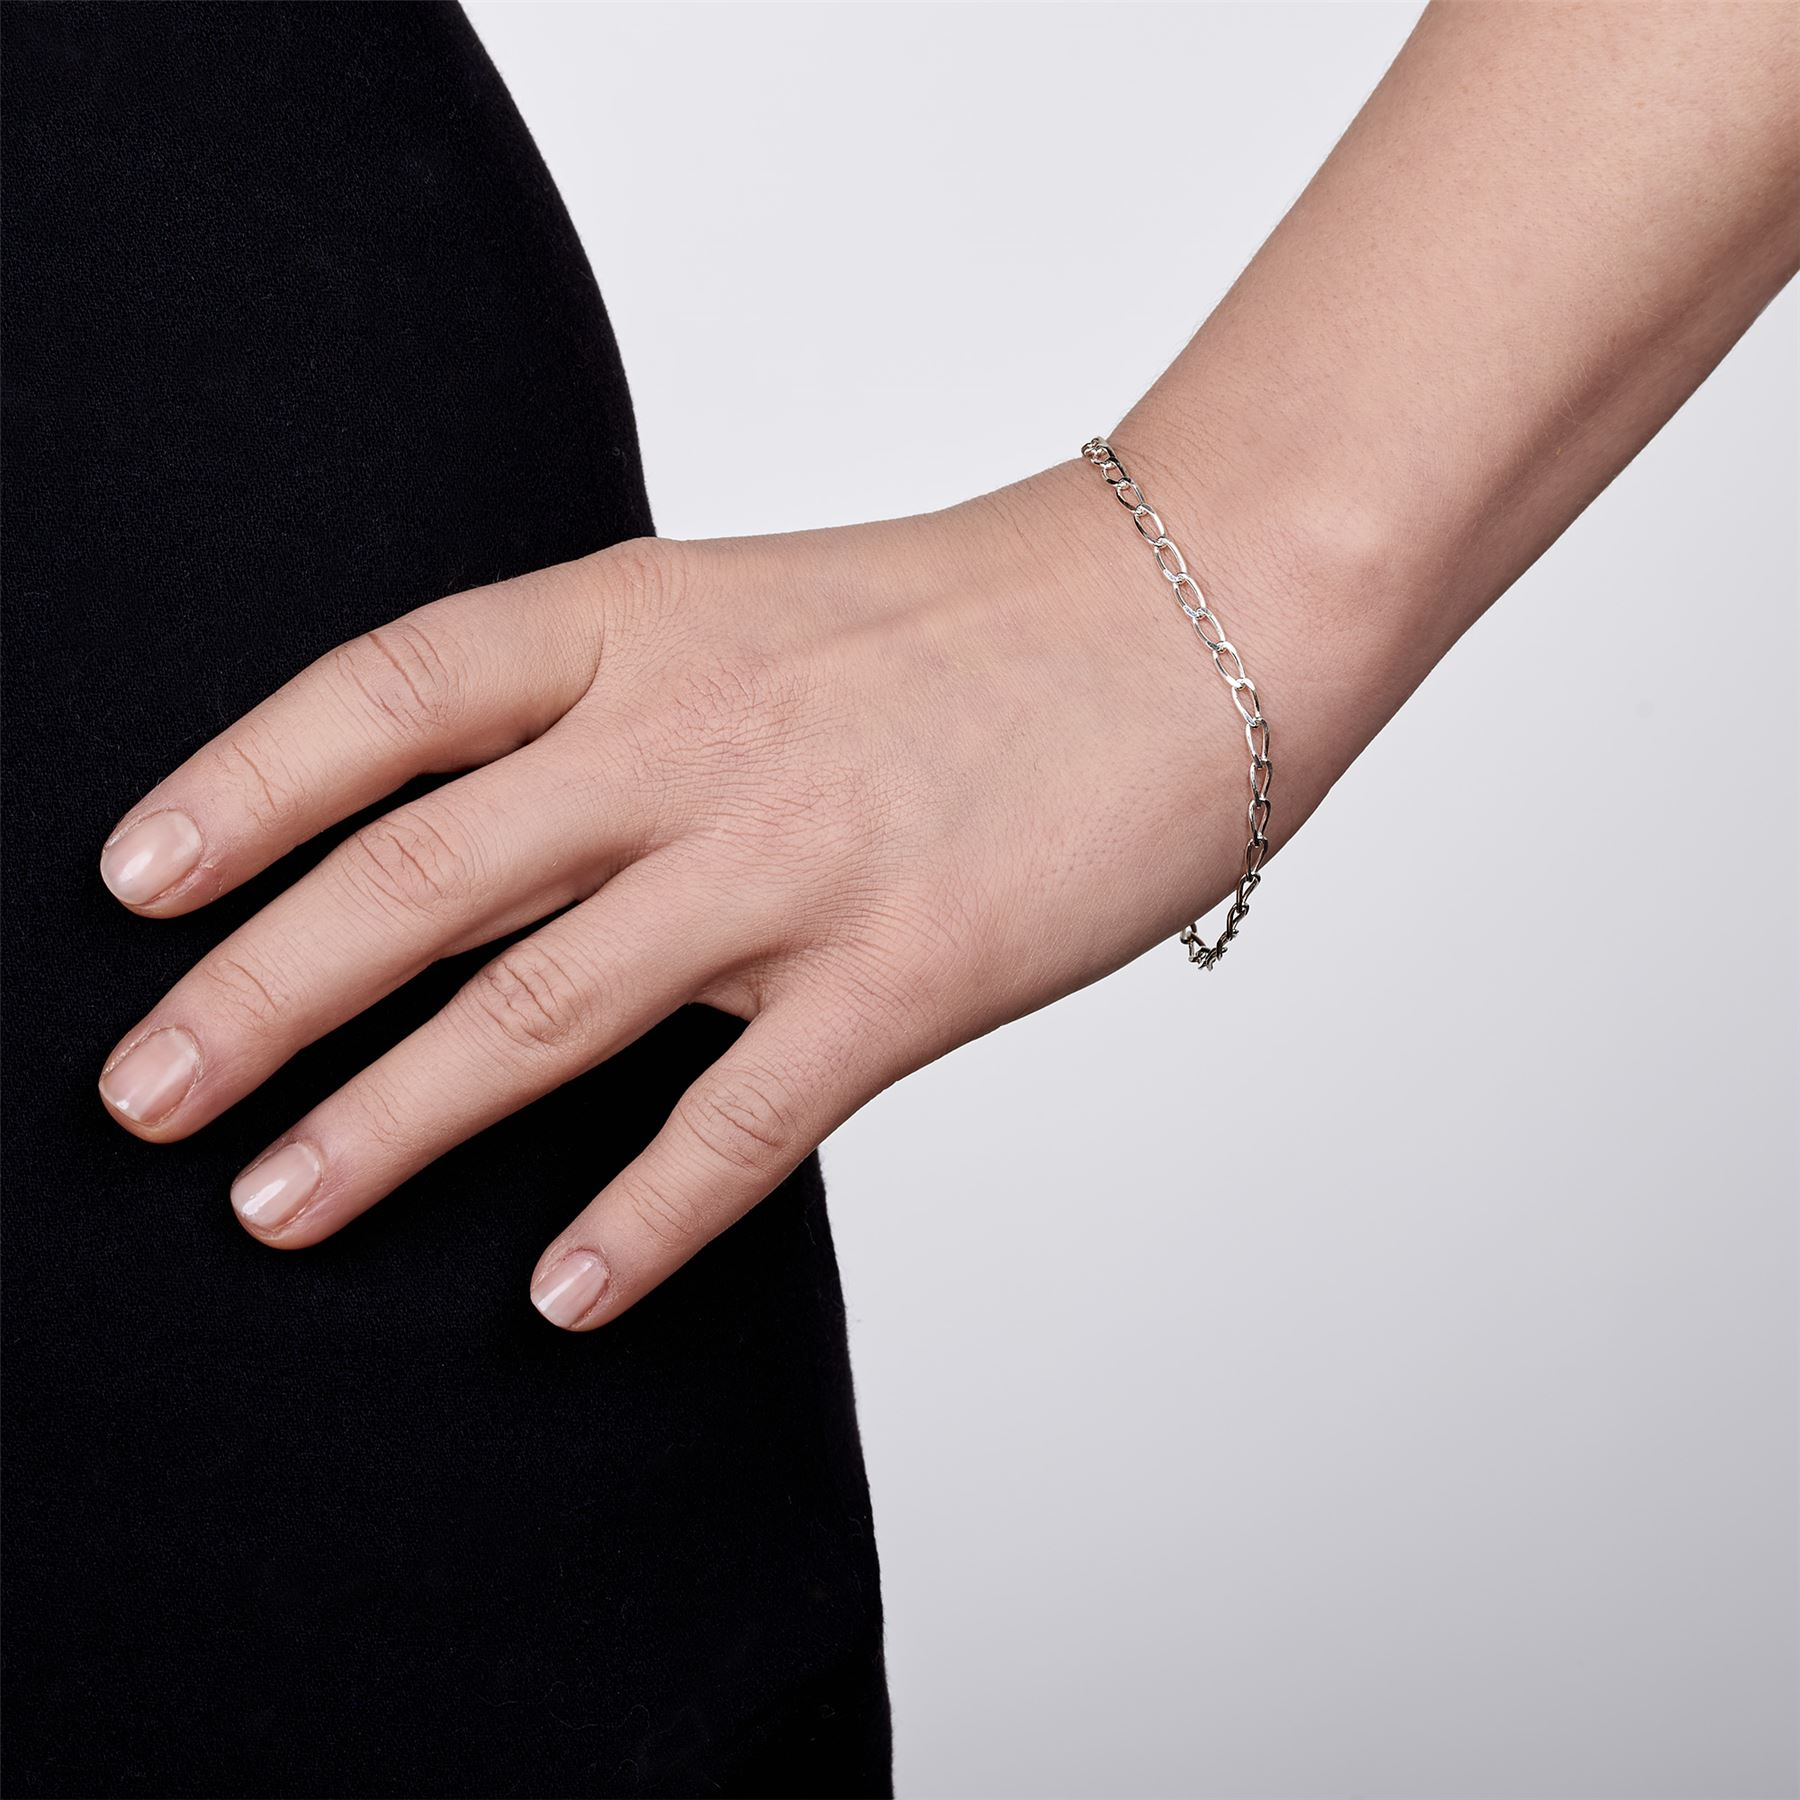 Amberta-Jewelry-Genuine-925-Sterling-Silver-Bracelet-Bangle-Chain-Made-in-Italy thumbnail 75